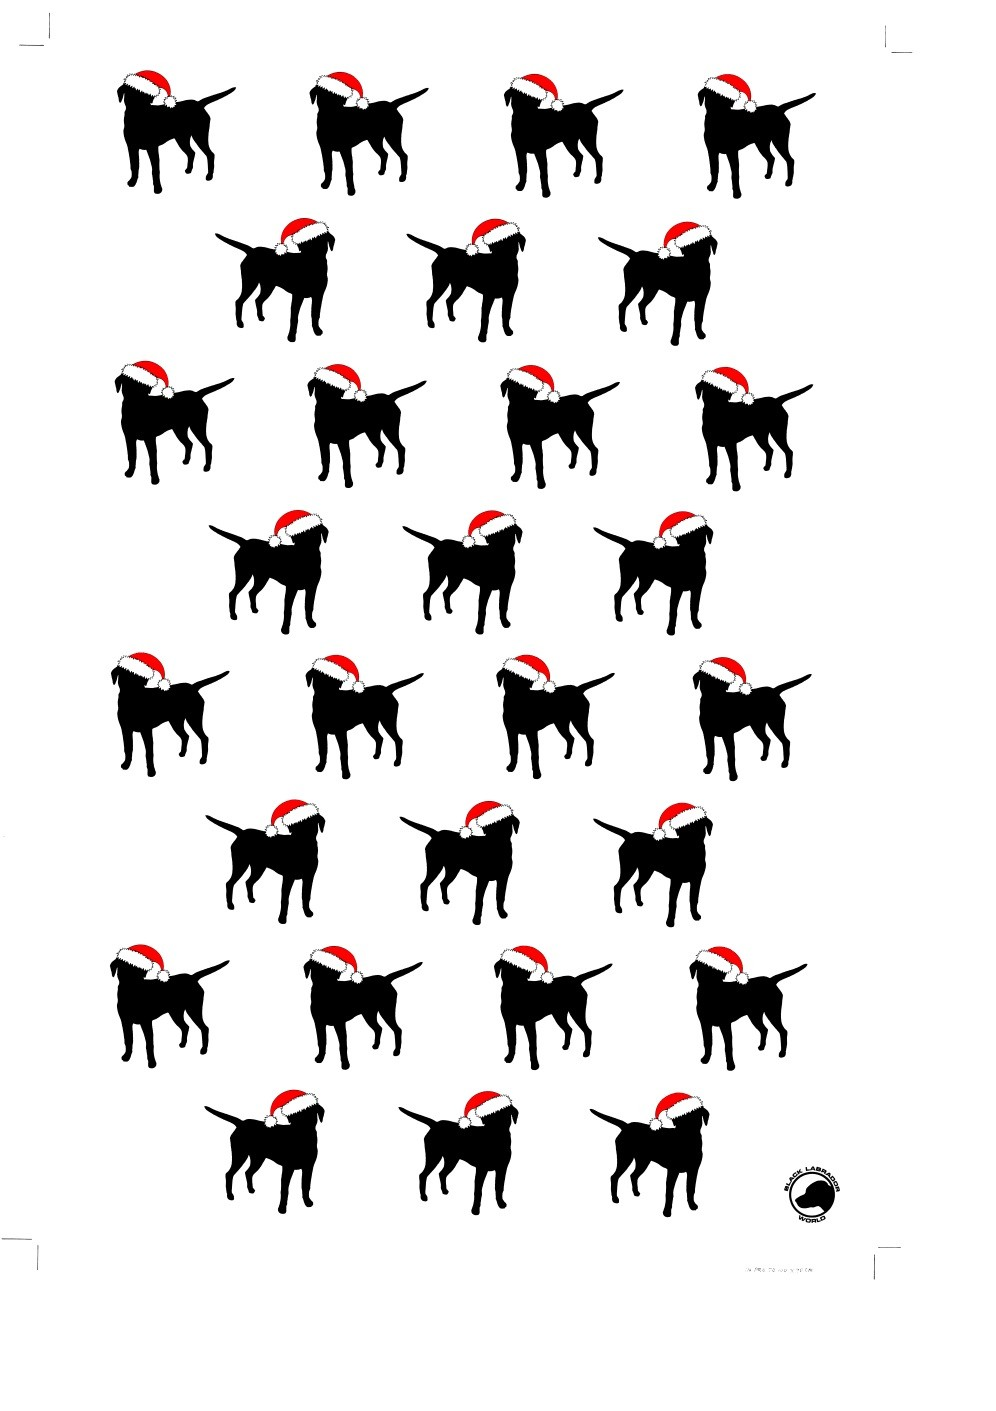 10 sheets of christmas wrapping paper showing silhouettes of a